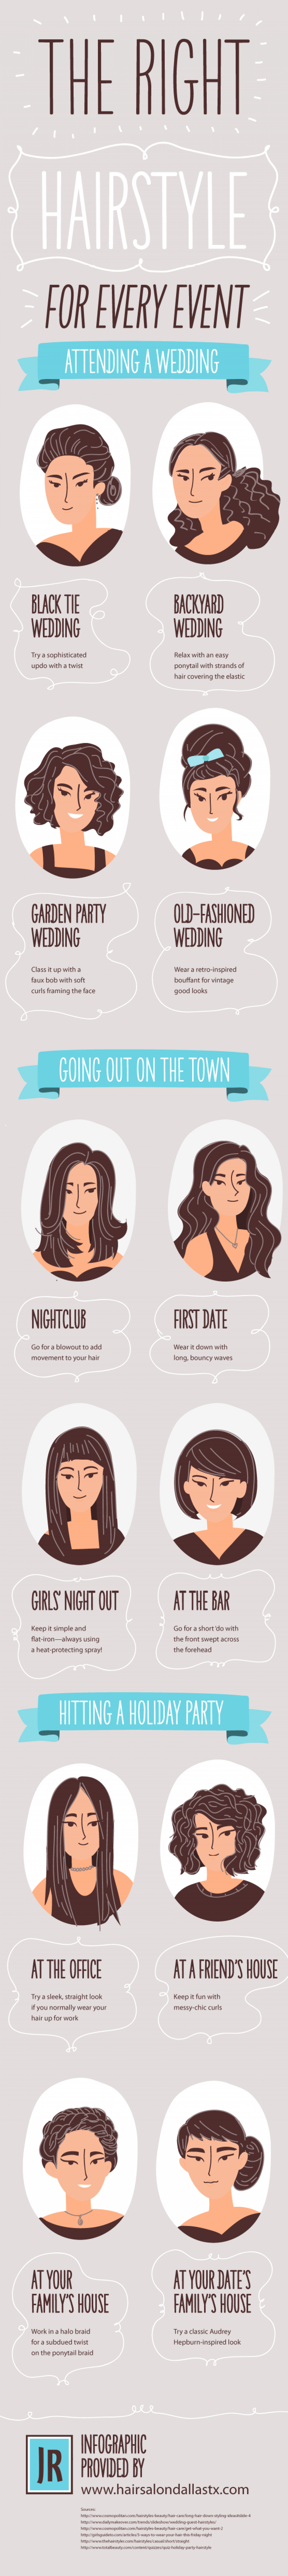 The Right Hairstyle for Every Event Infographic